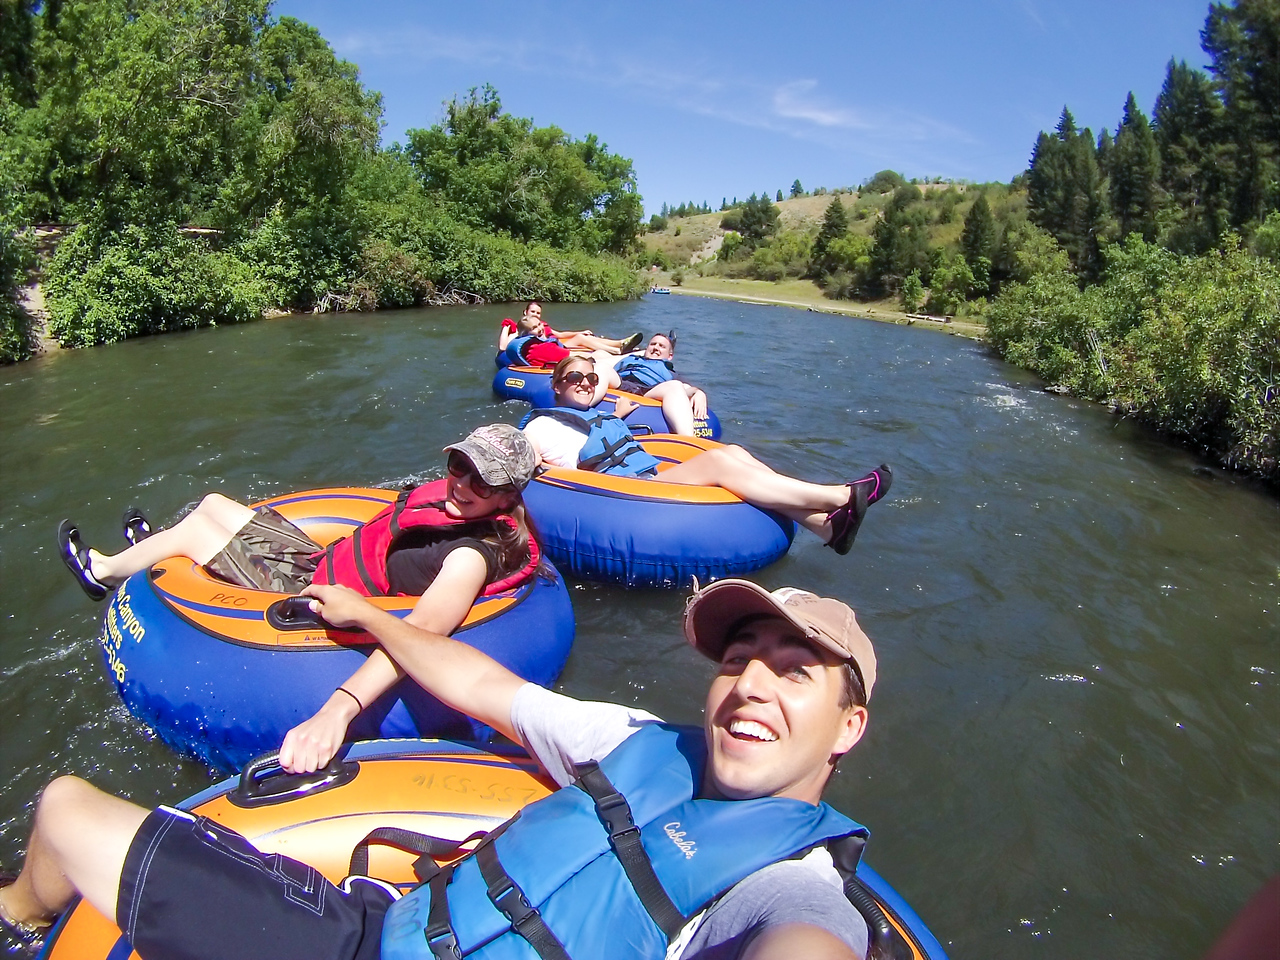 Floating the Provo River - July 30